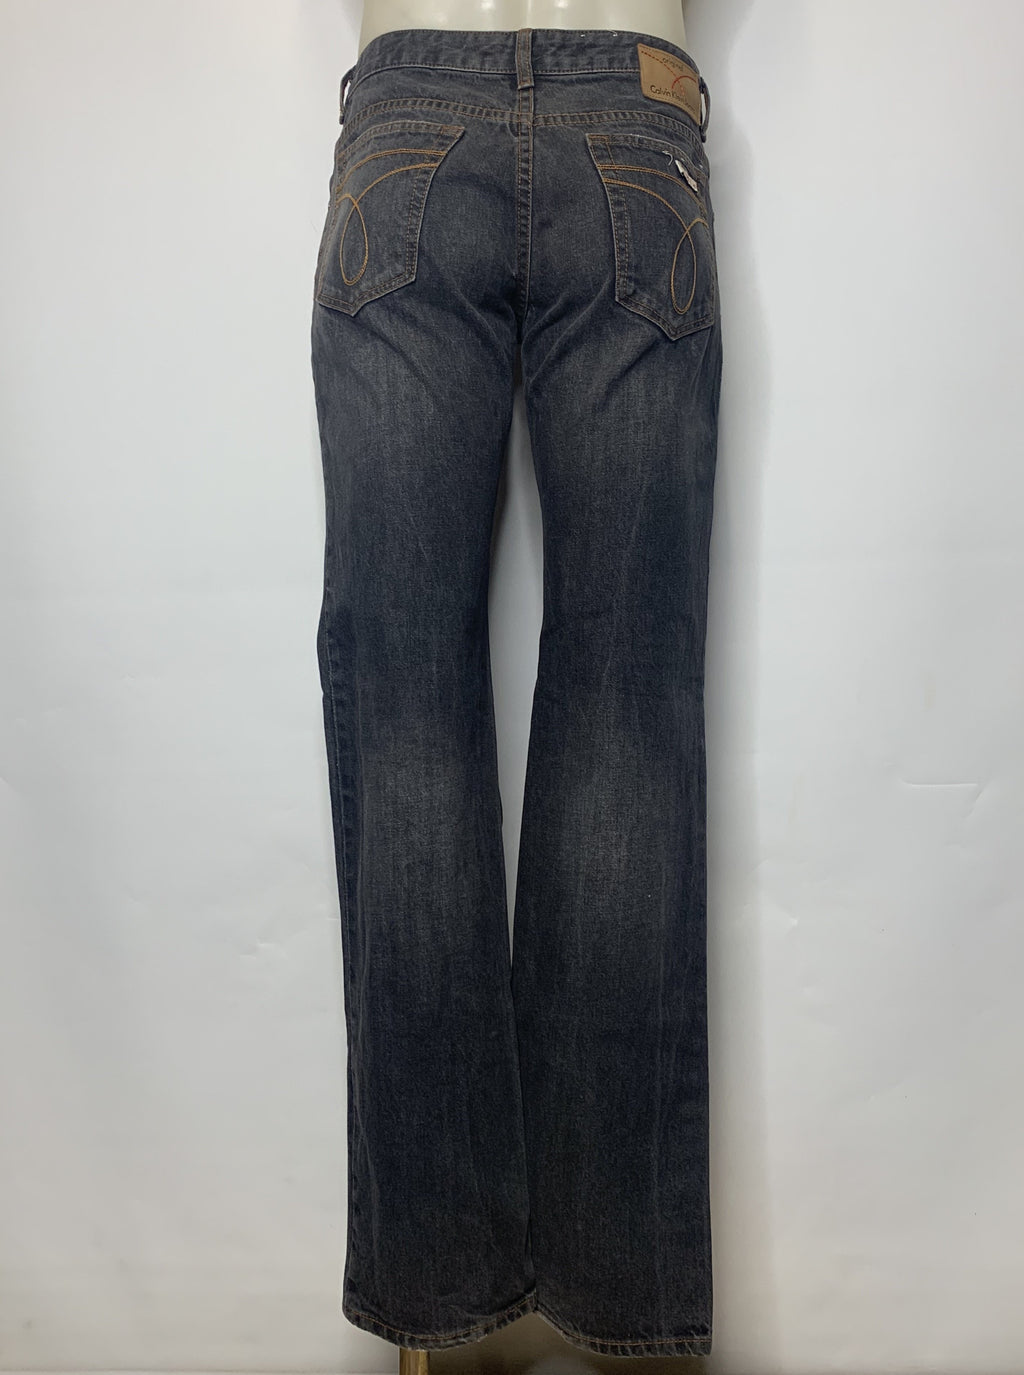 Calvin Klein Ash Denim Jeans - AS IS - small hole